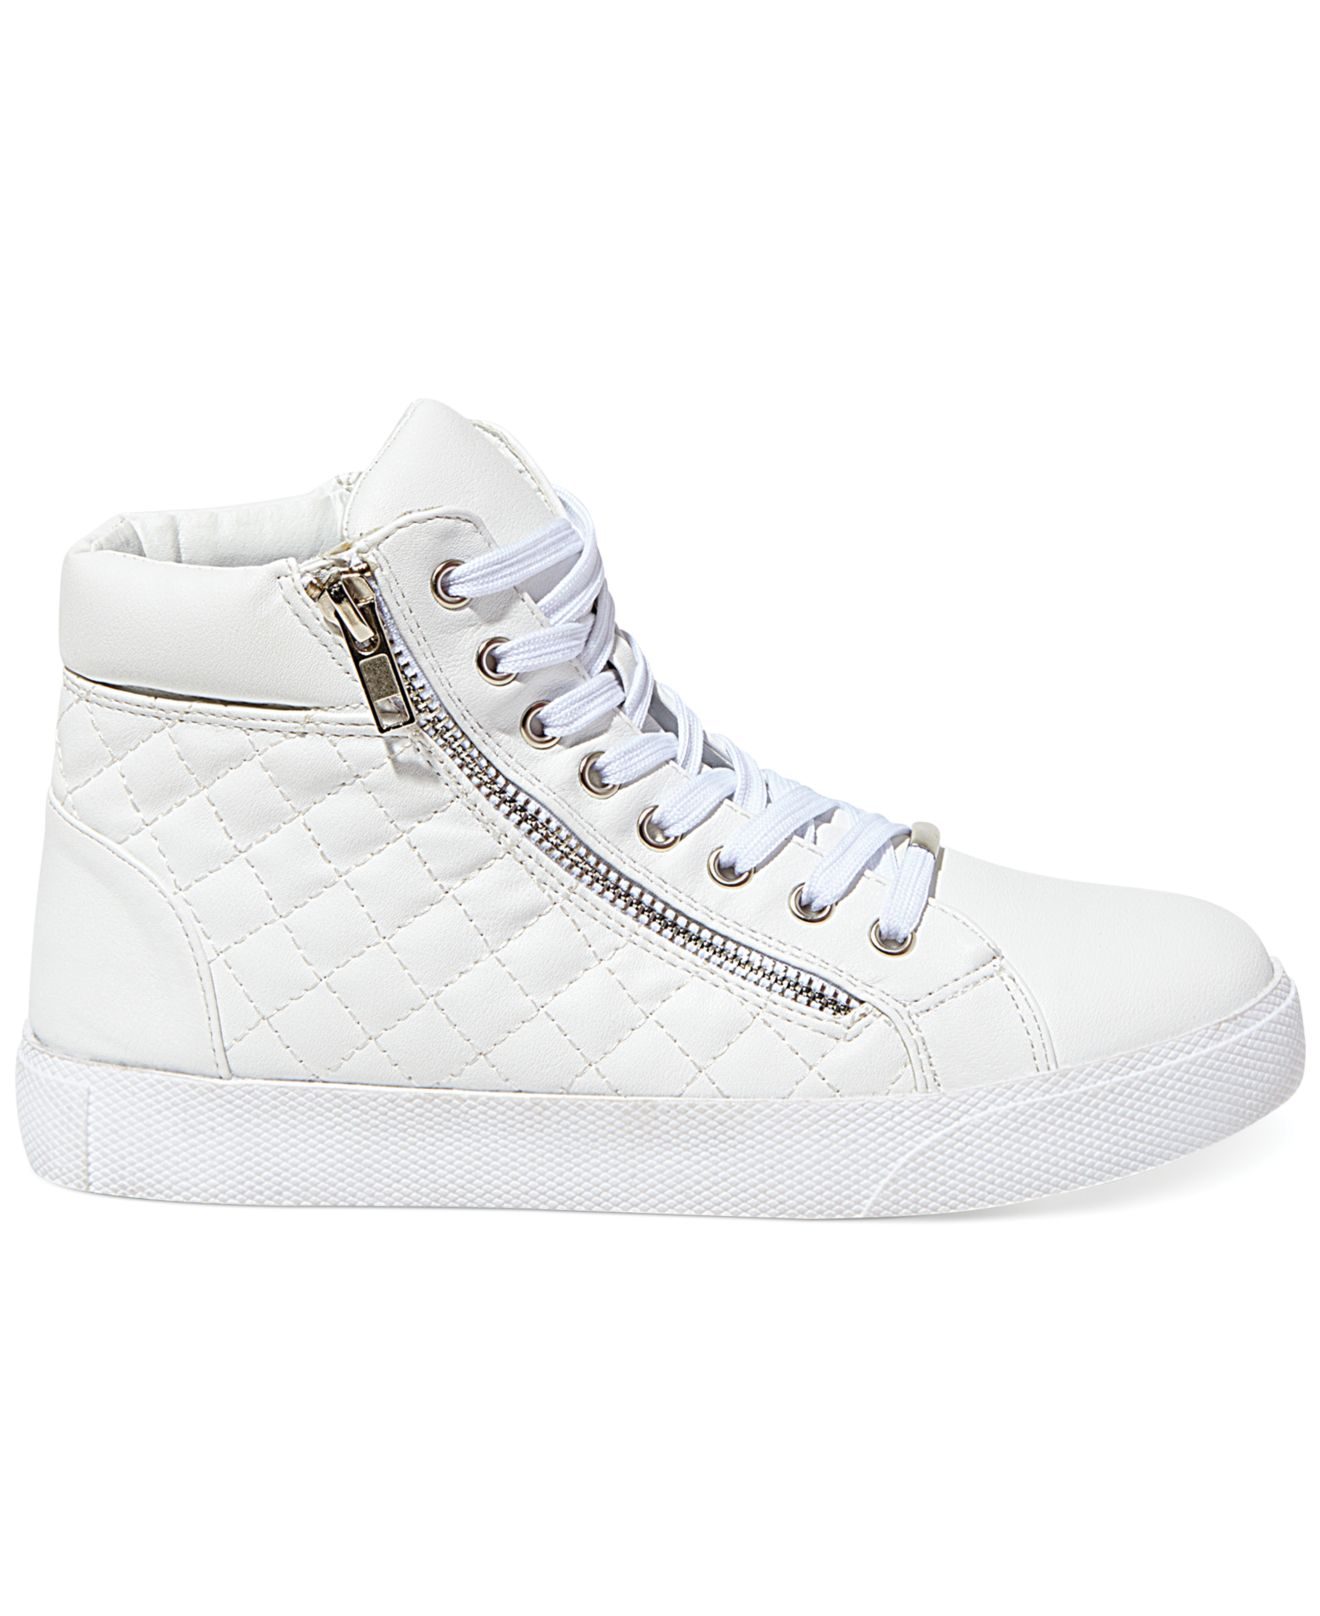 42bd3224e6a Steve Madden White Women'S Caffine High Top Quilted Sneakers